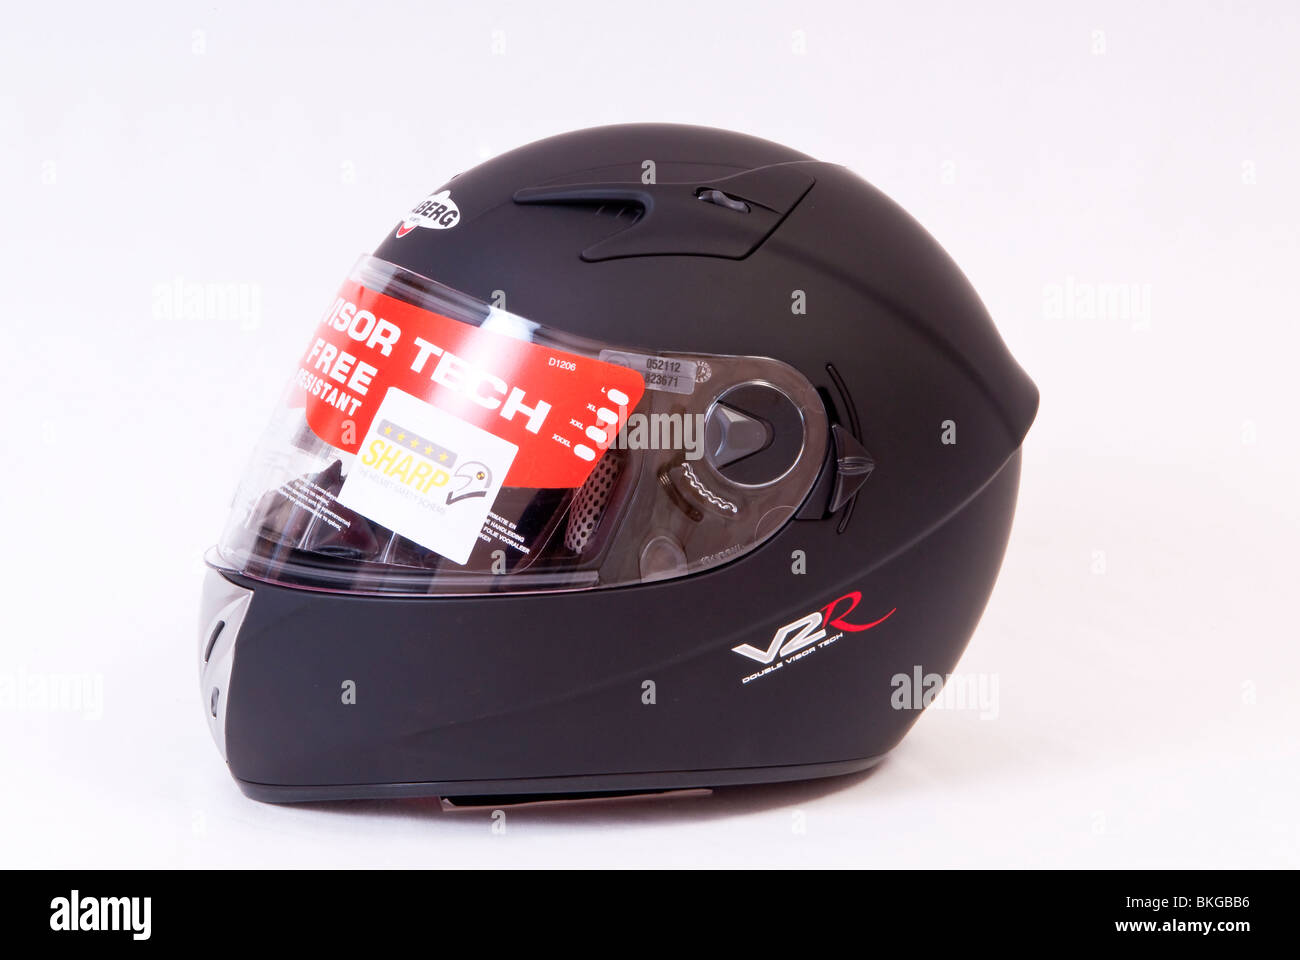 Matt Black Motorcycle Crash Helmet Stock Photo